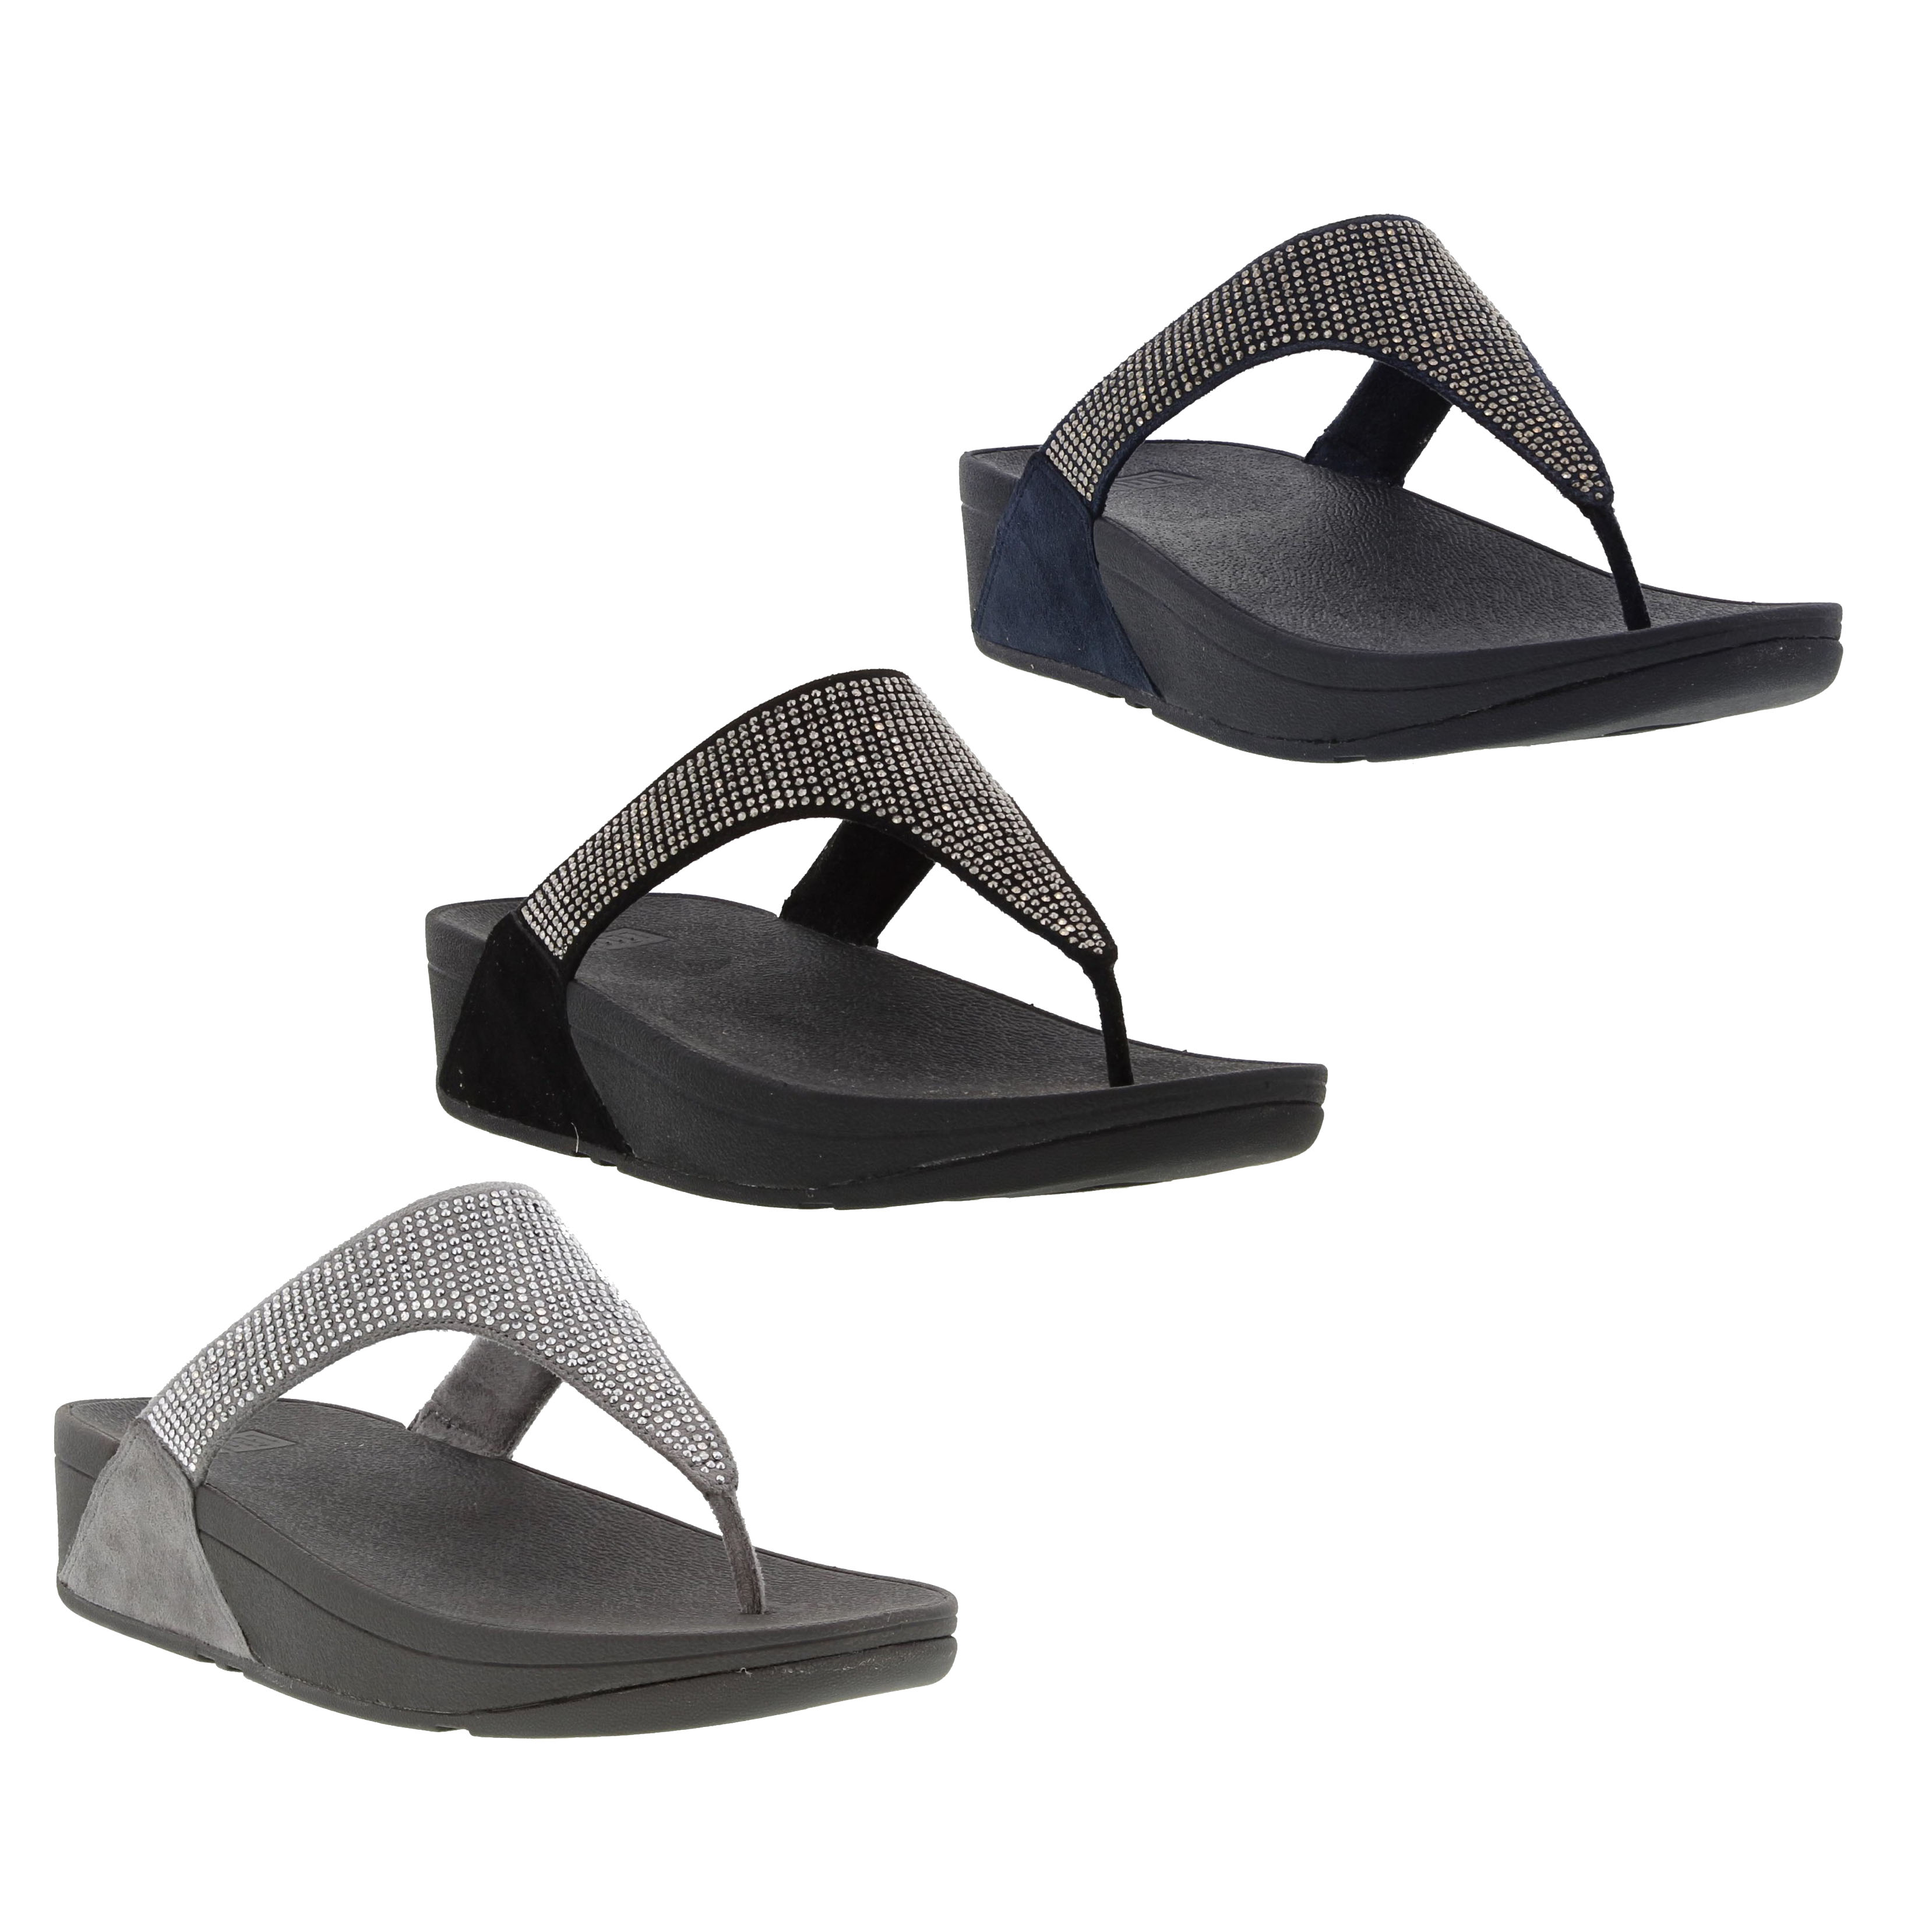 28f4d29fc Fitflop Slinky Rokkit Toe Post Sandals Womens Flip Flop Black Navy ...